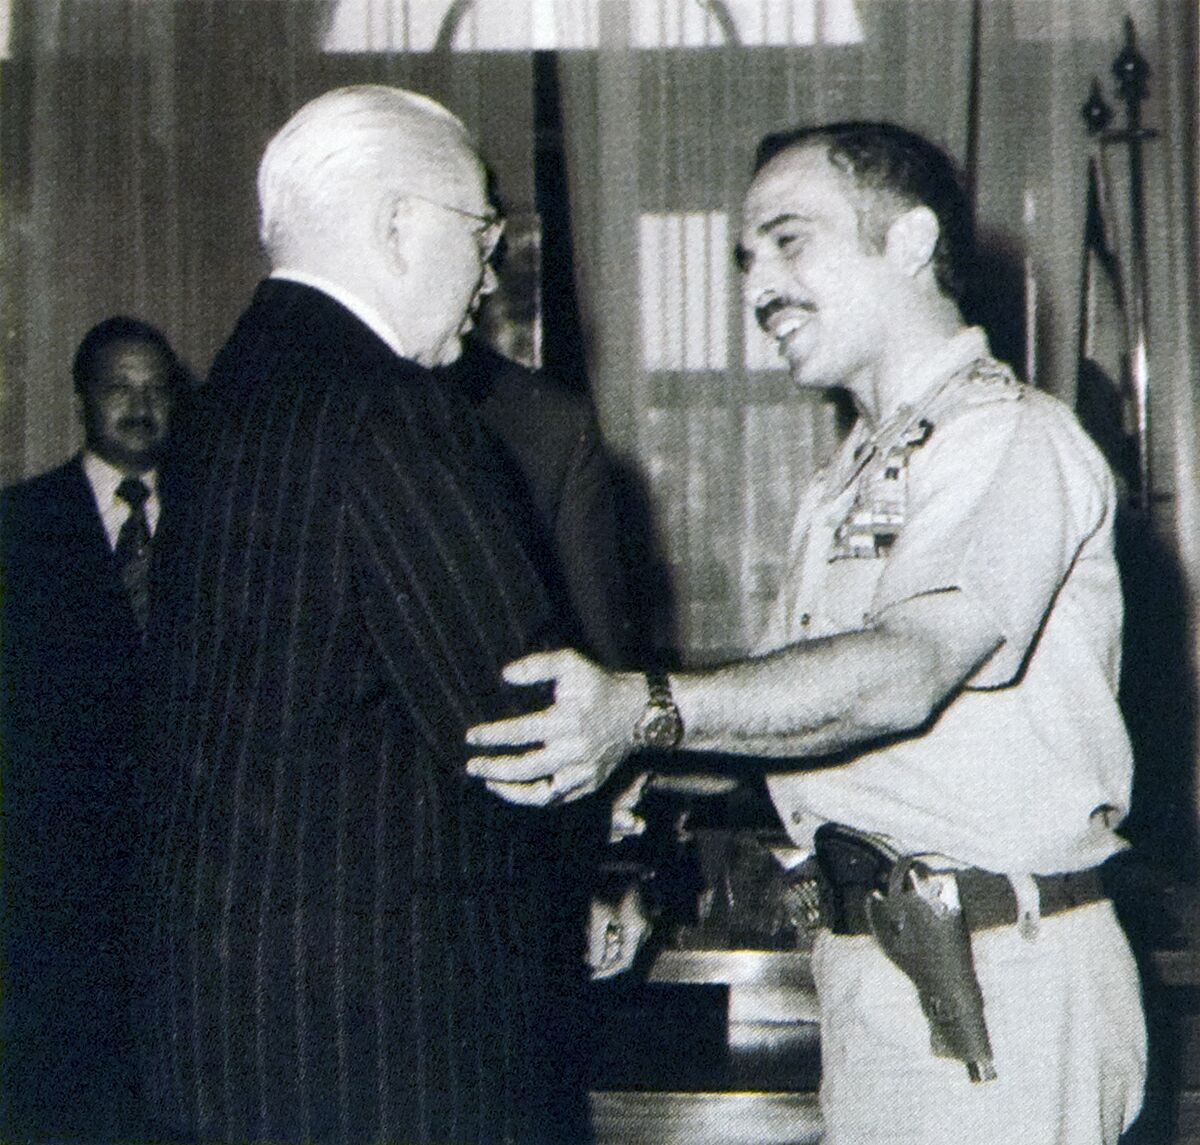 95 hwa%20and%20king%20hussein.jpg